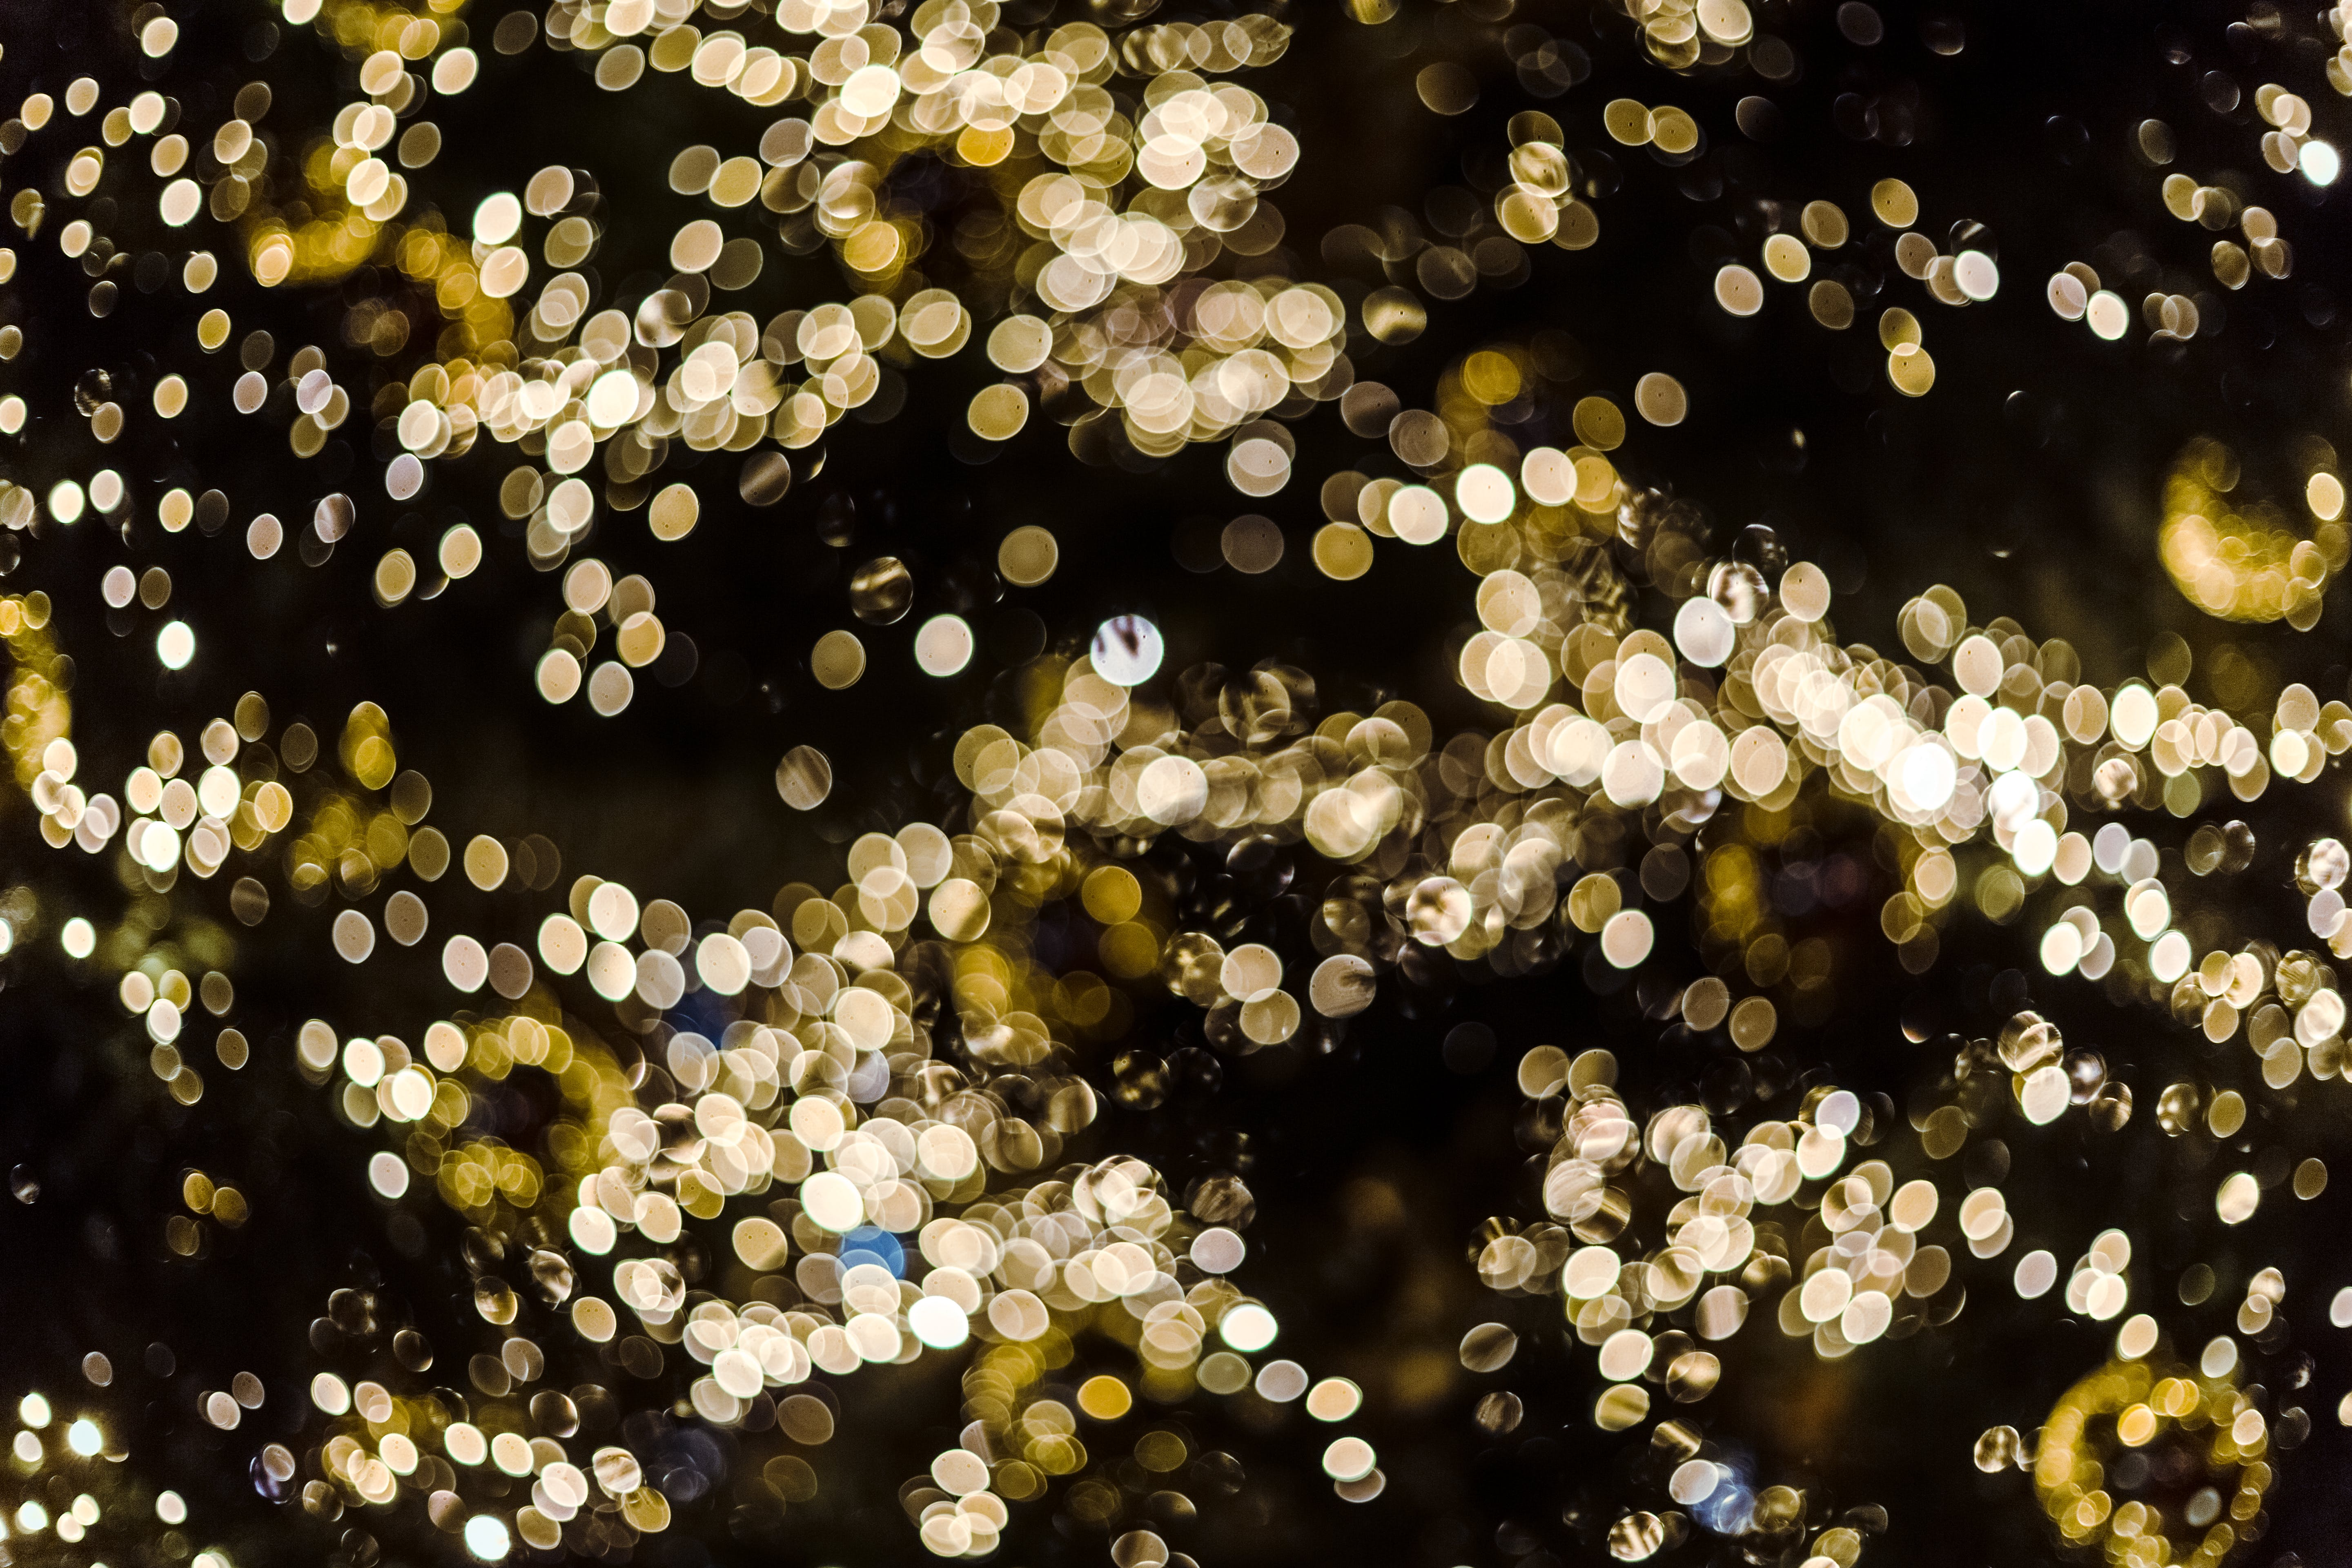 Gold-colored Bokeh Lights